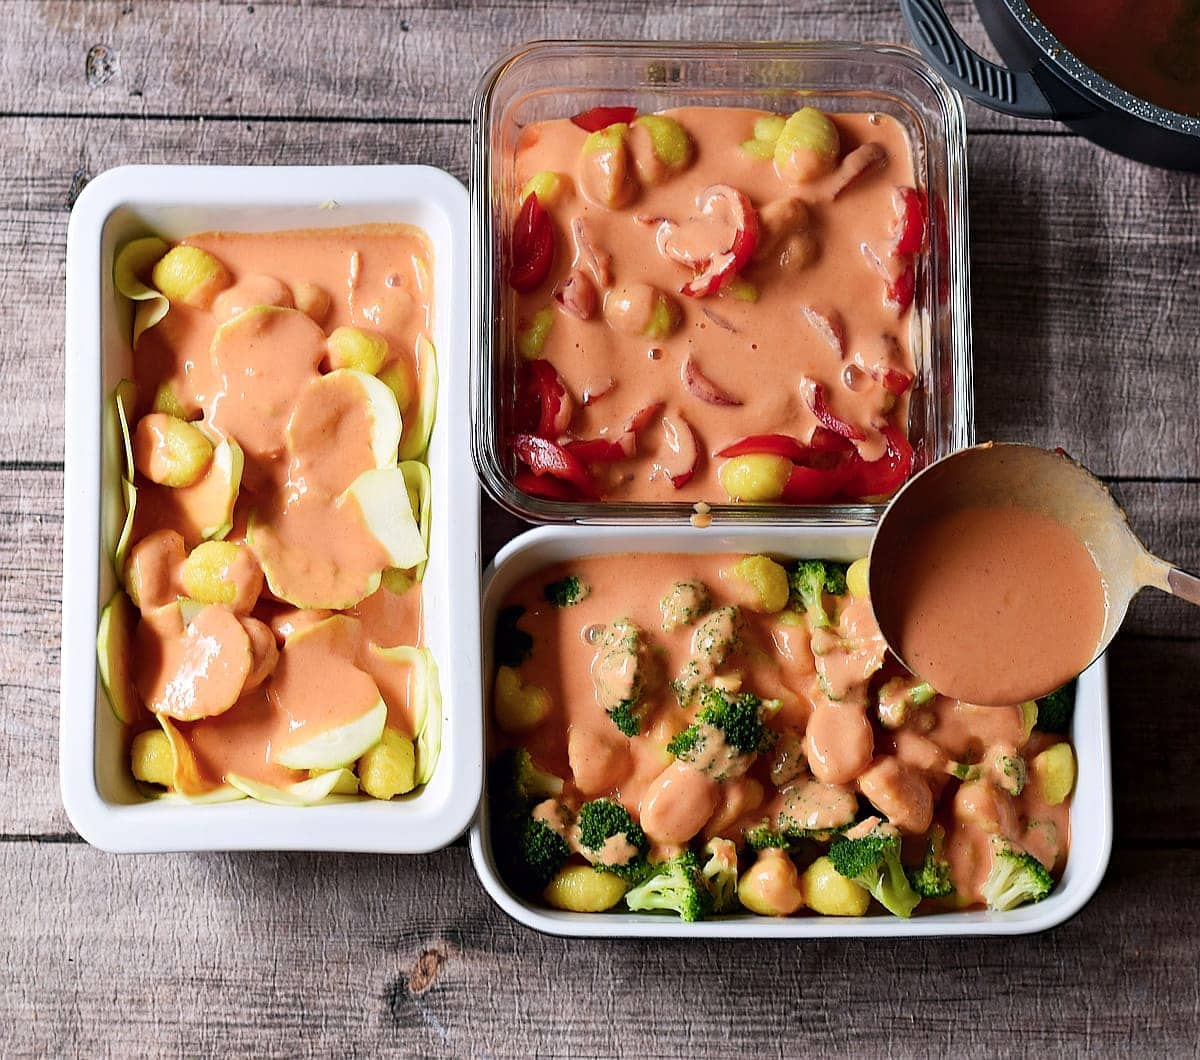 pouring tomato cream sauce in three baking dishes containing gnocchi and veggies